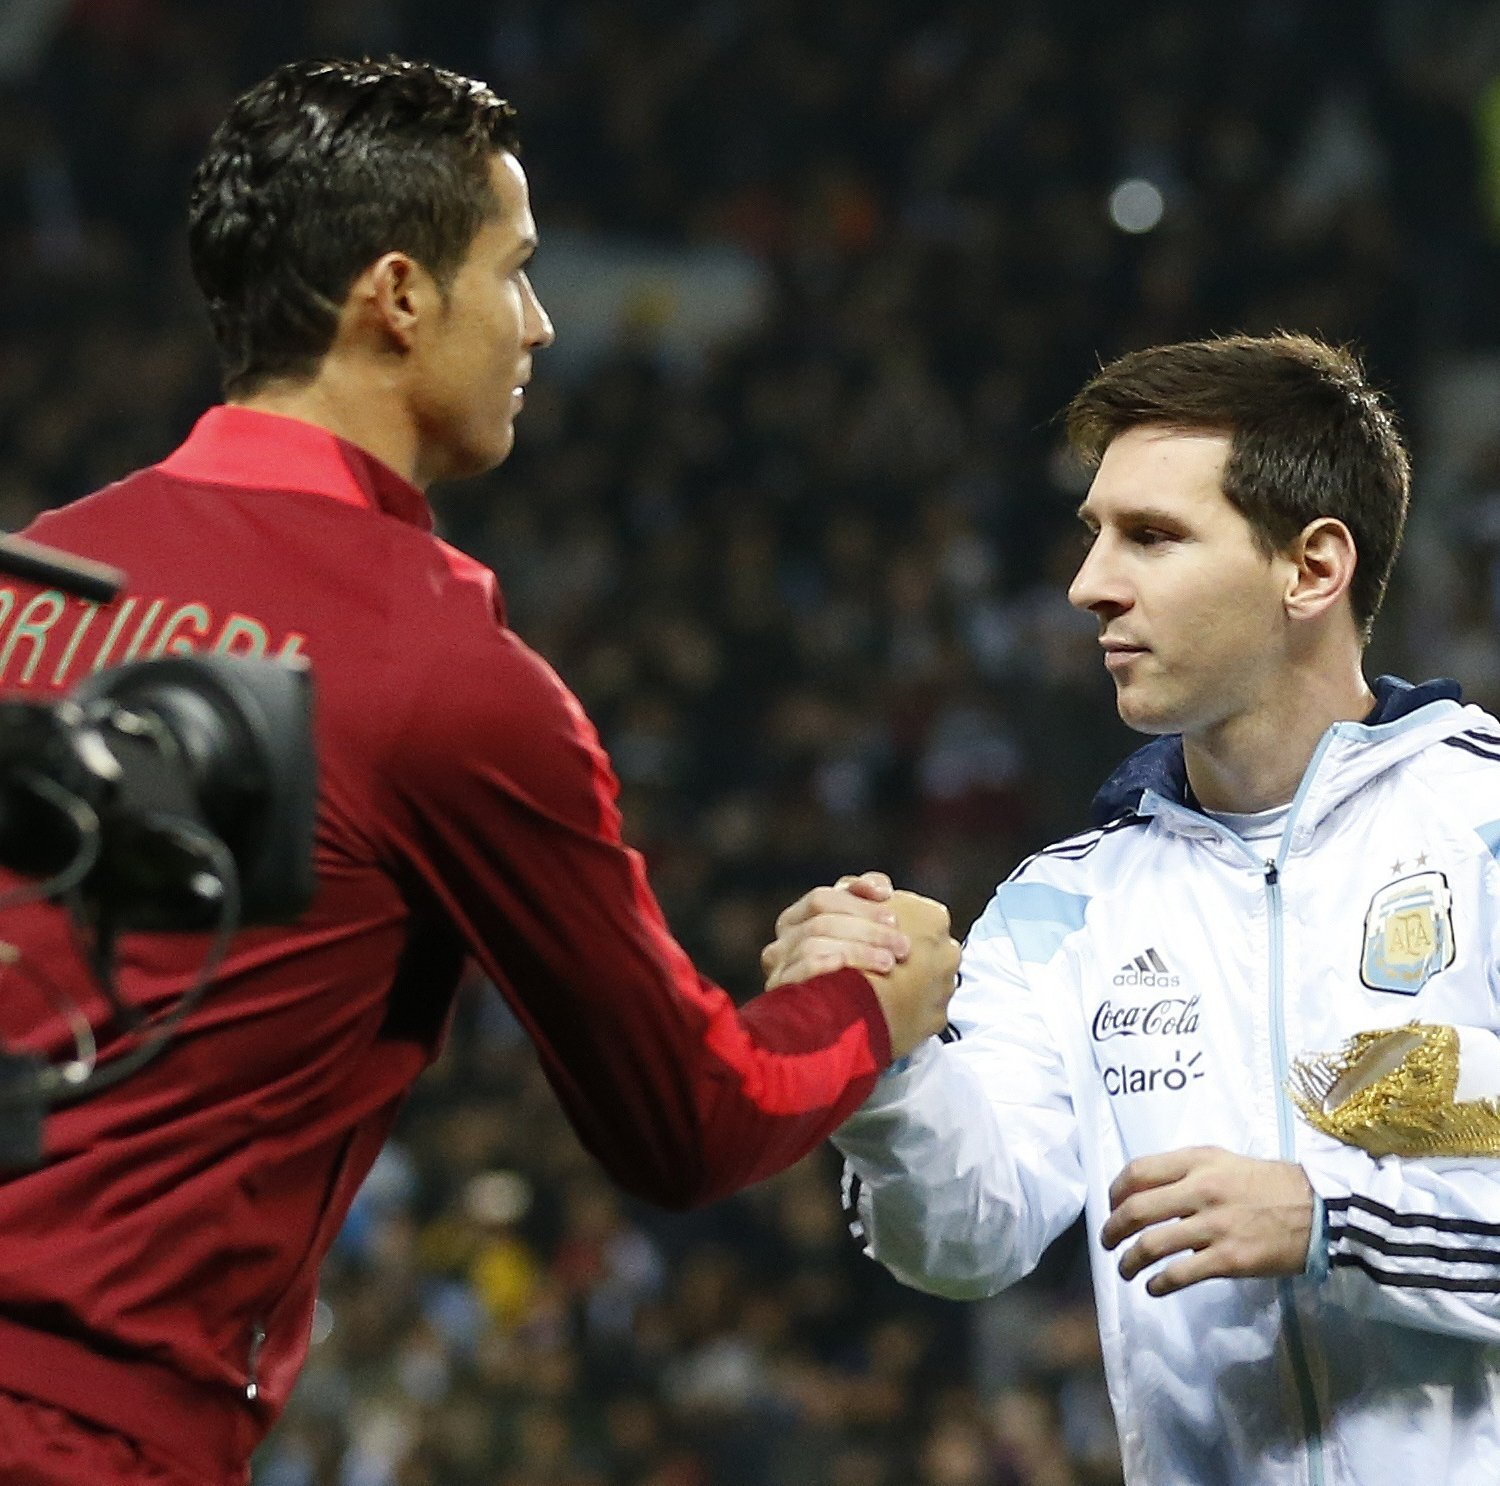 Cristiano Ronaldo I M Not Playing Just Lionel Messi: Cristiano Ronaldo Offers Lionel Messi Support After Star's